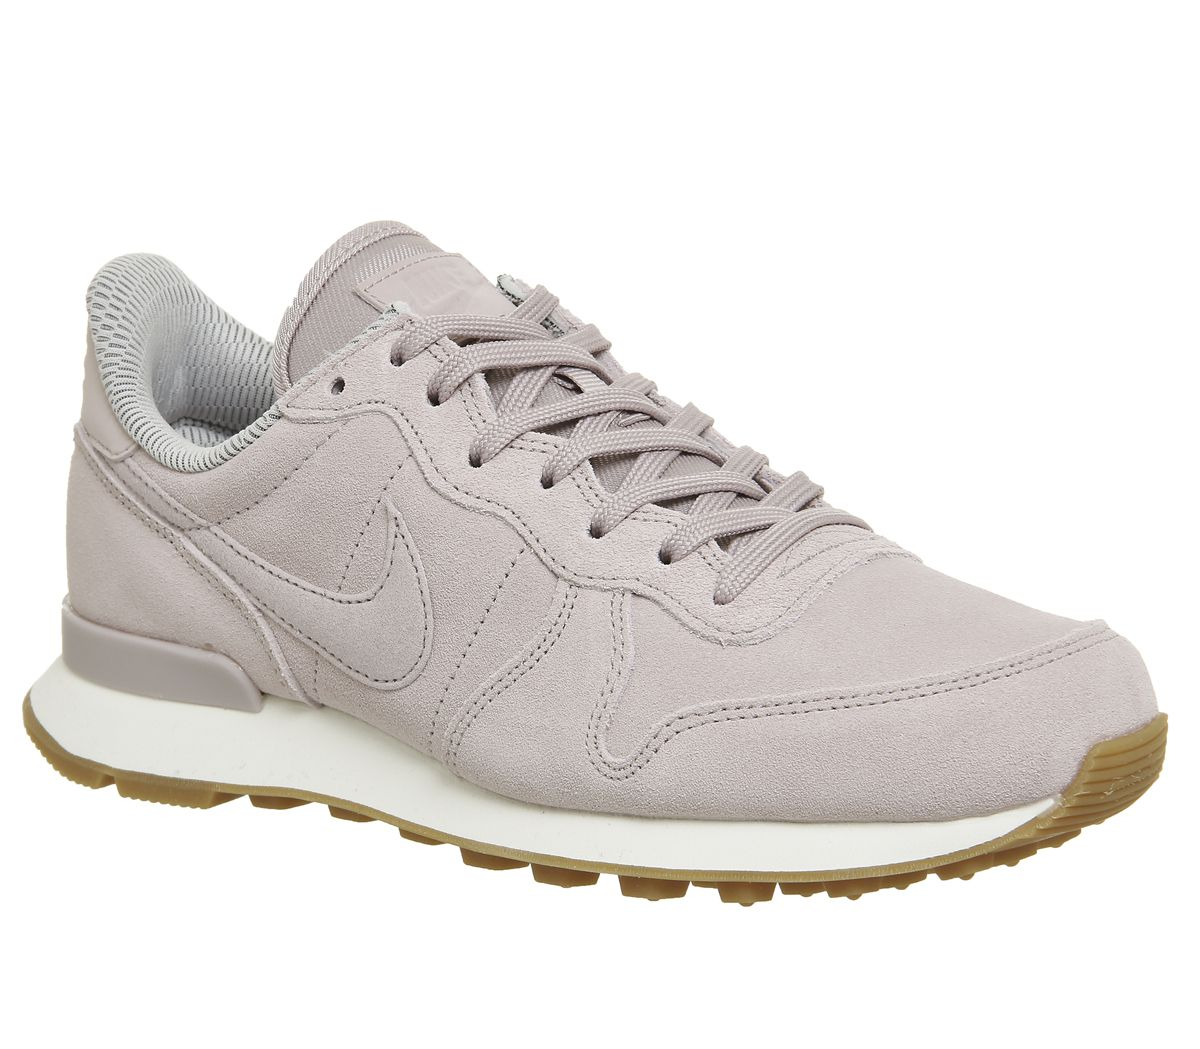 new concept 32265 fb960 Nike Nike Internationalist Trainers Particle Rose - Hers trainers